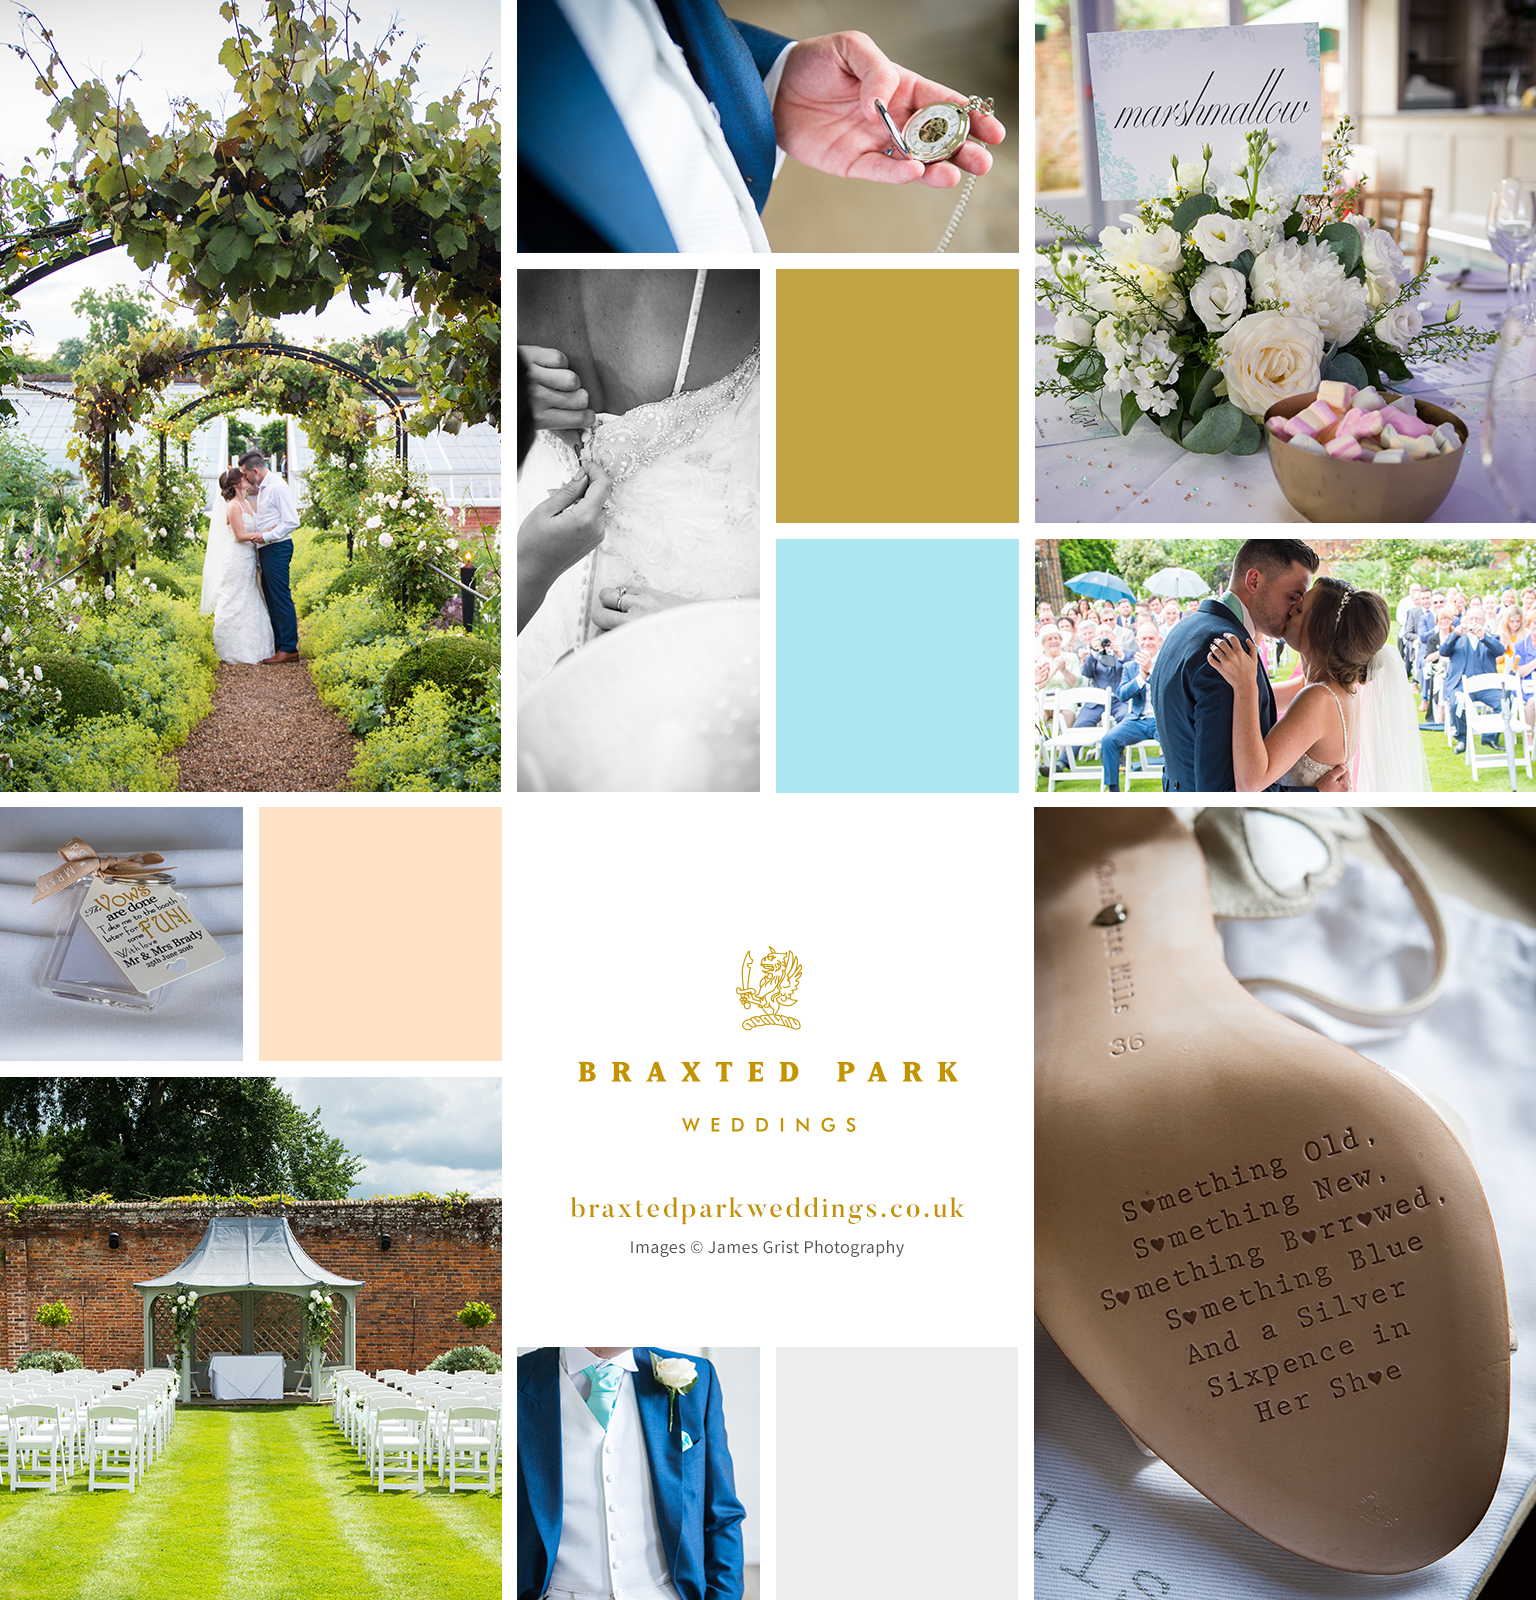 If Madeline and Martyn's summer wedding has inspired you then save their wedding style – wedding ideas.